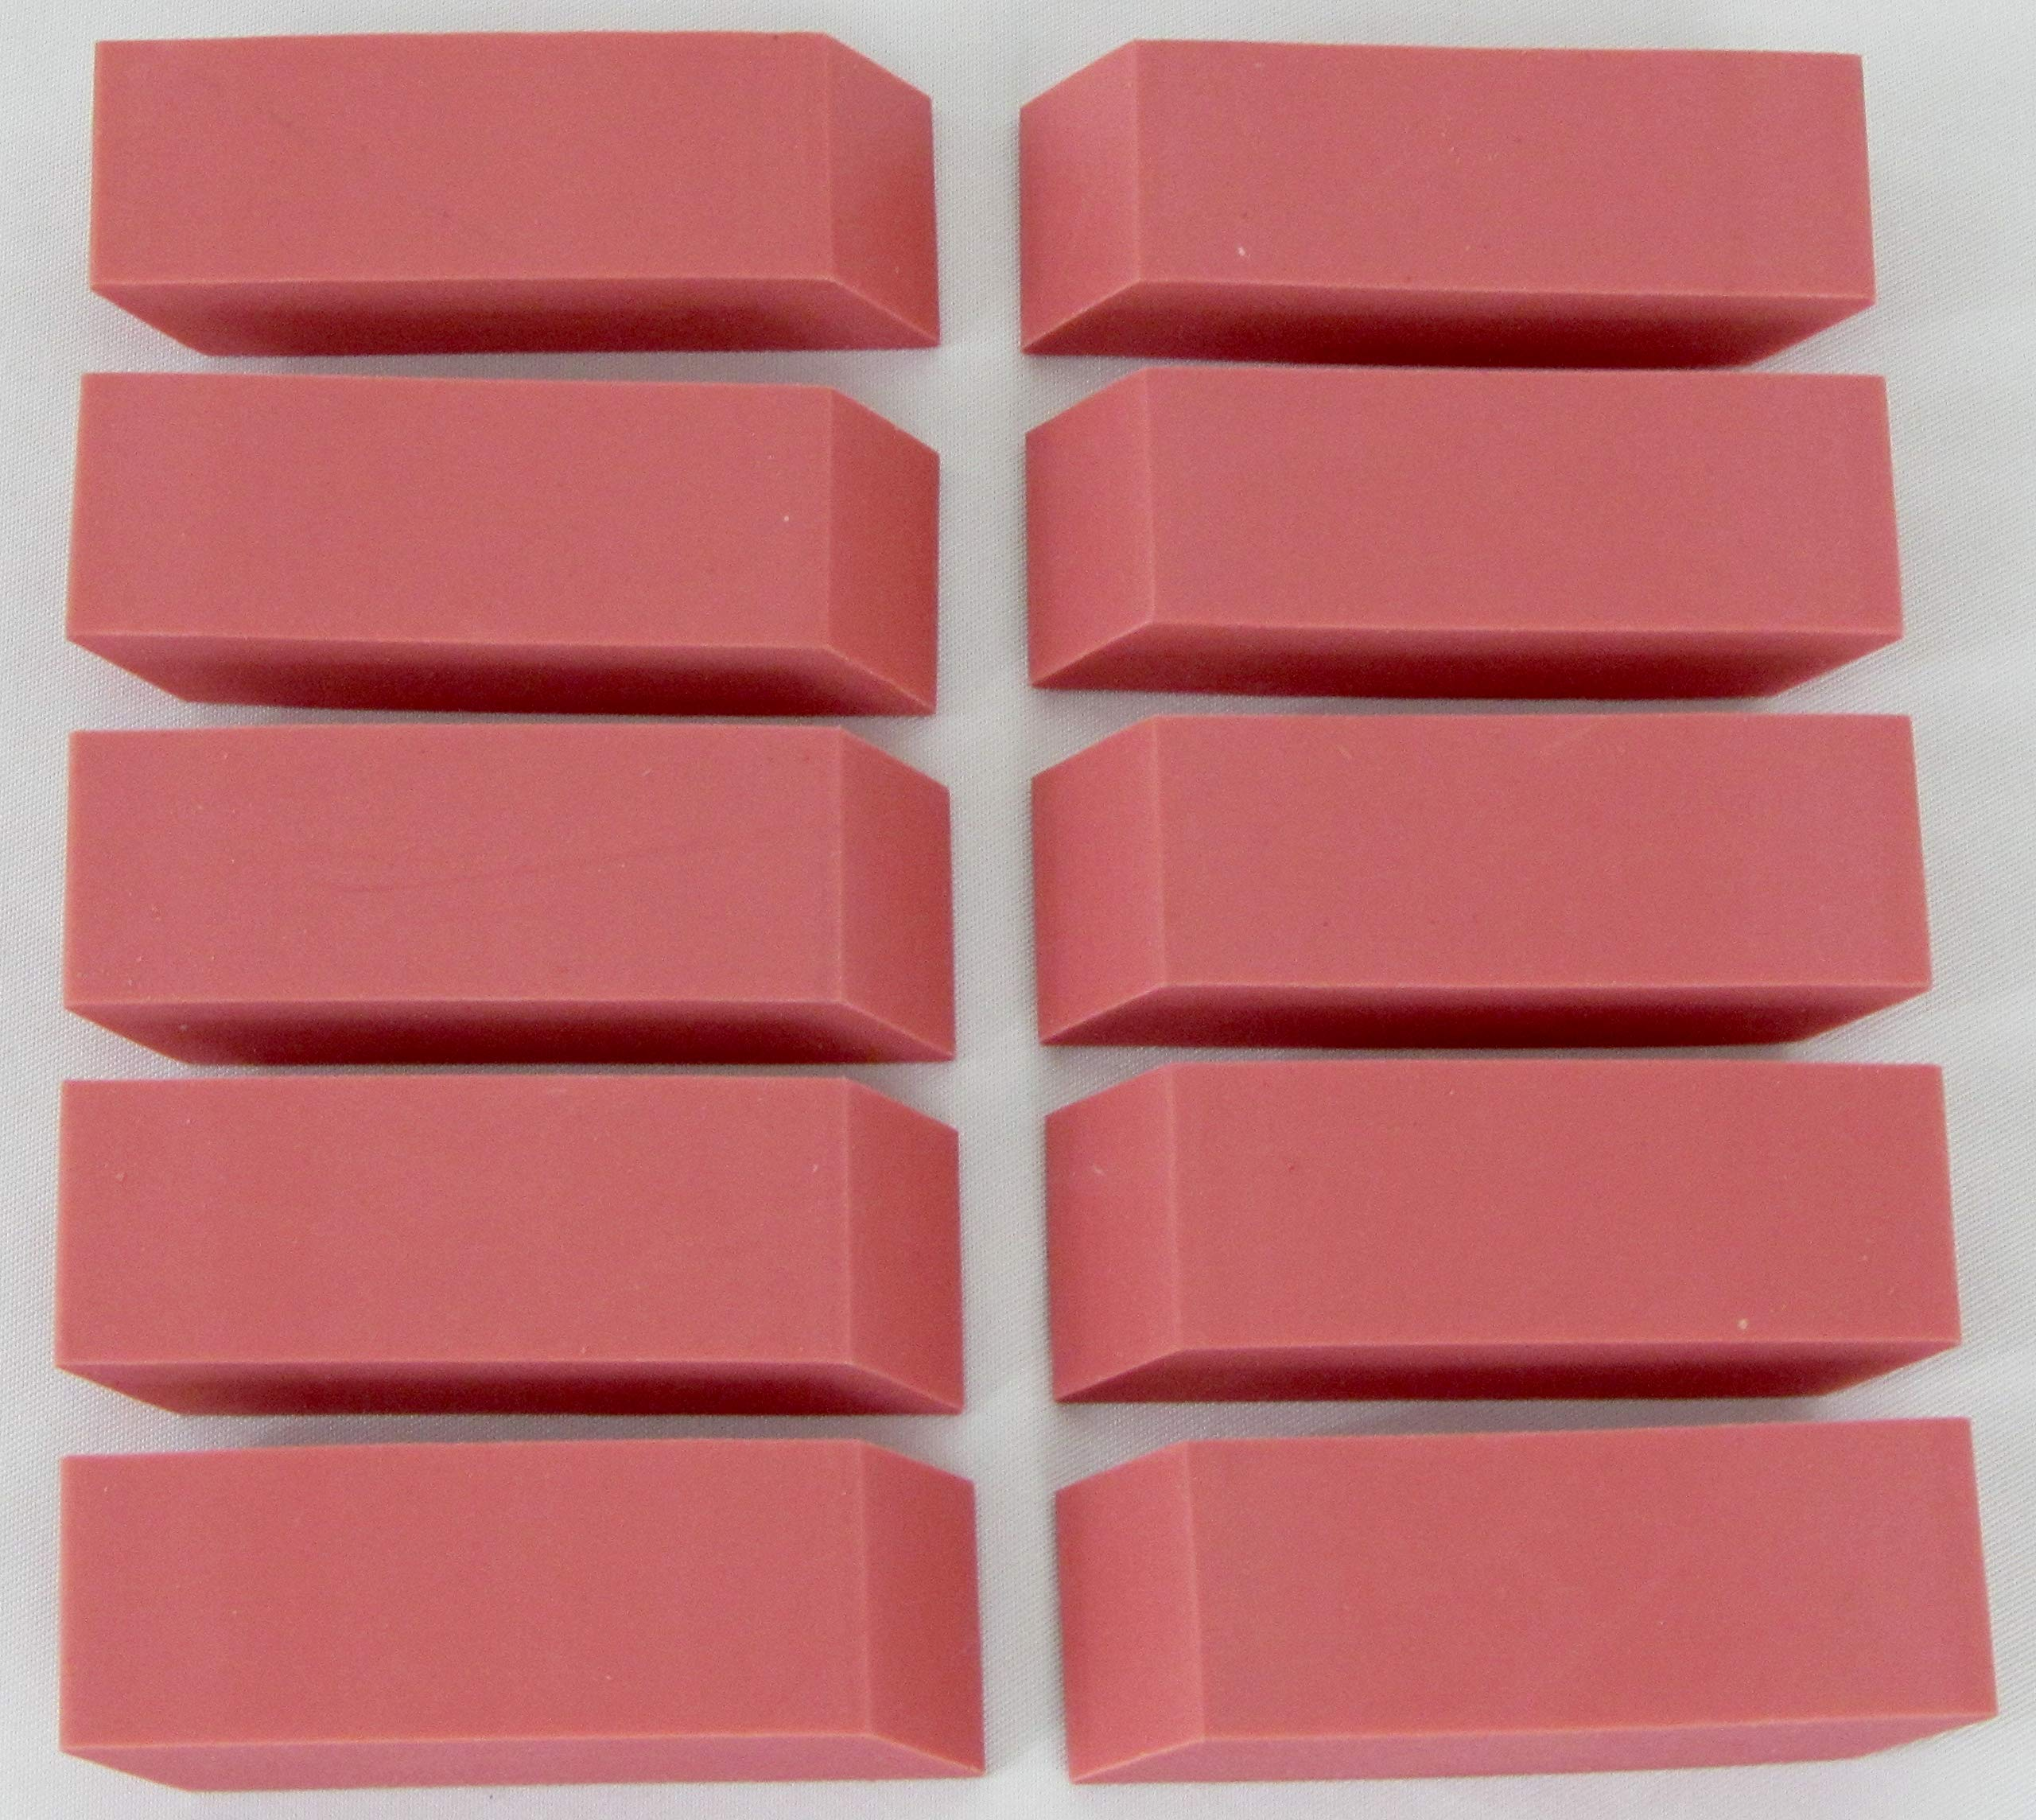 Pink Erasers Bulk pack, Case Pack of 500, Ideal for Bulk Buyers